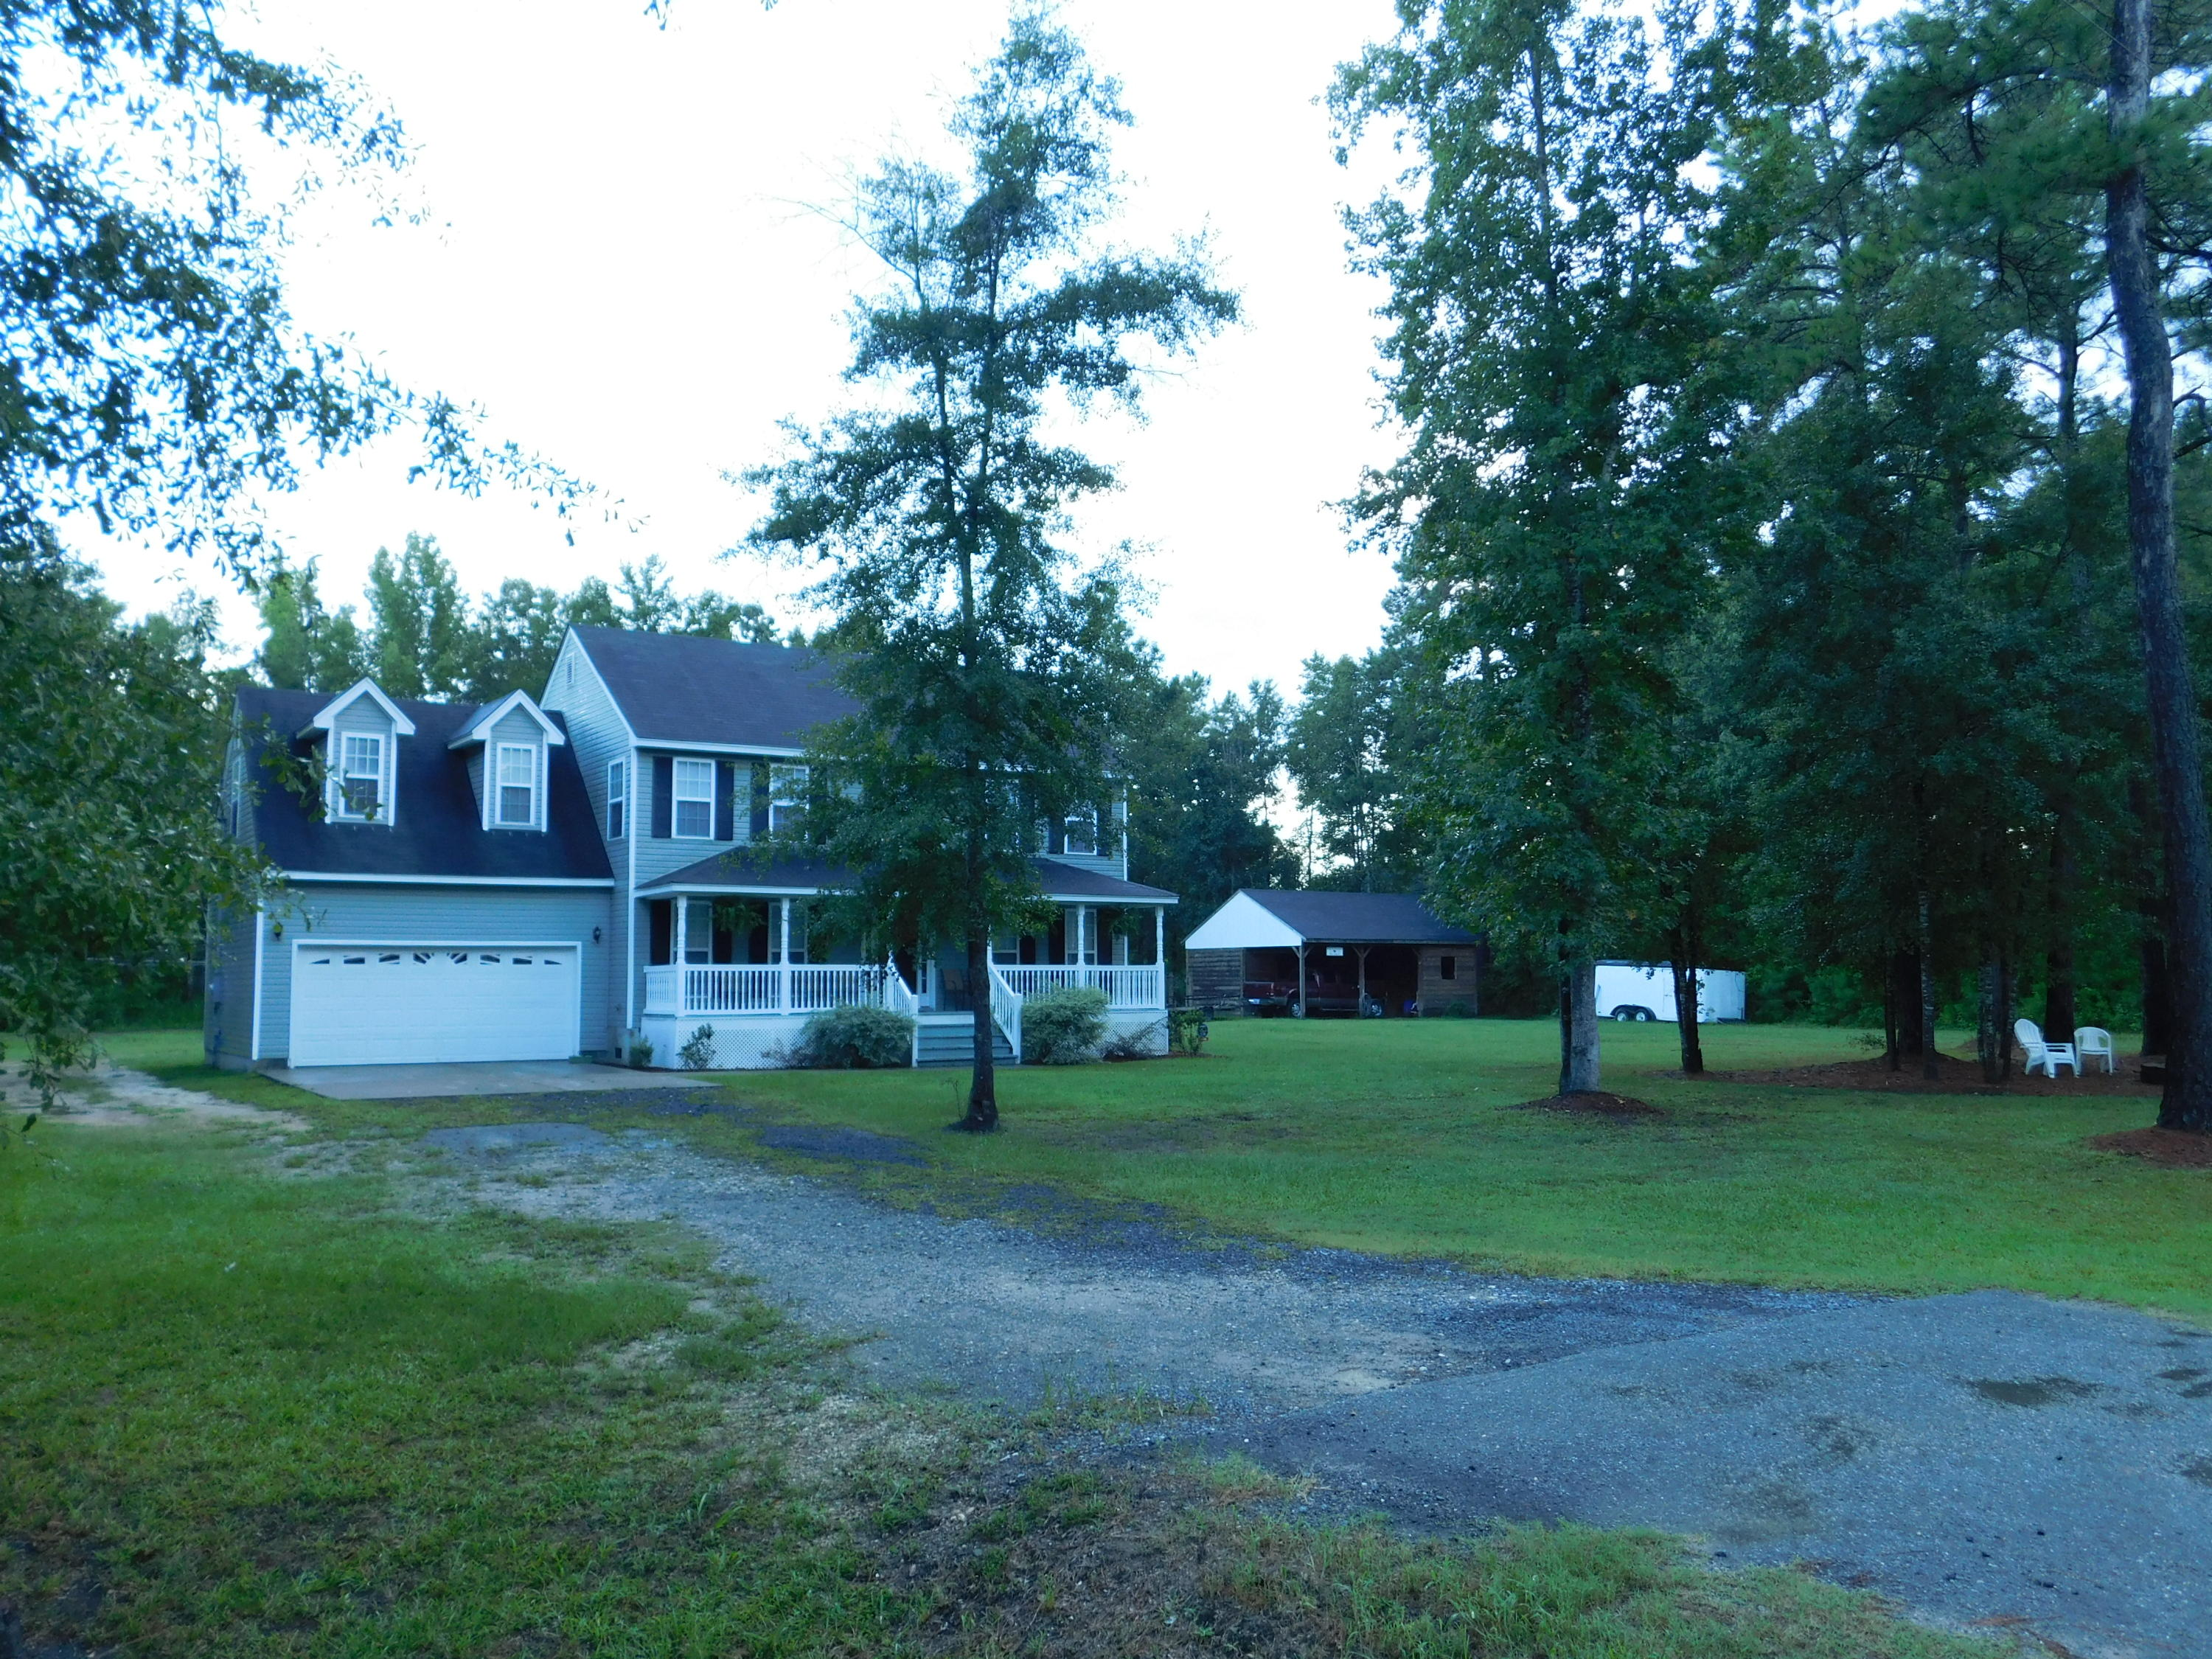 Photo of 721 Moultrie Ln, Huger, SC 29450